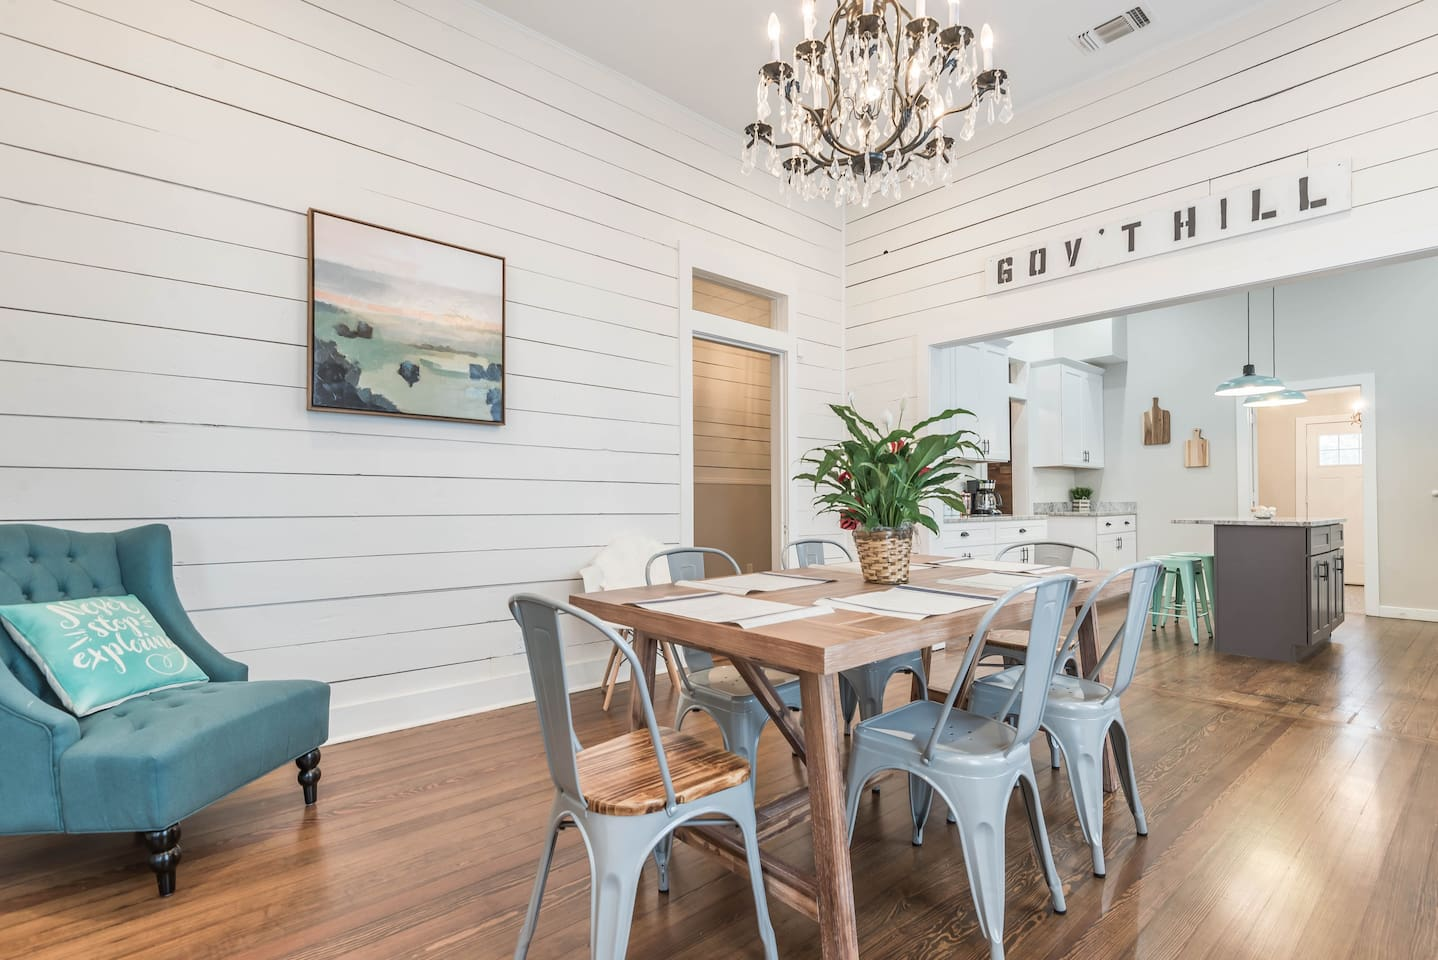 Spacious dining room for unforgettable meals with your loved ones